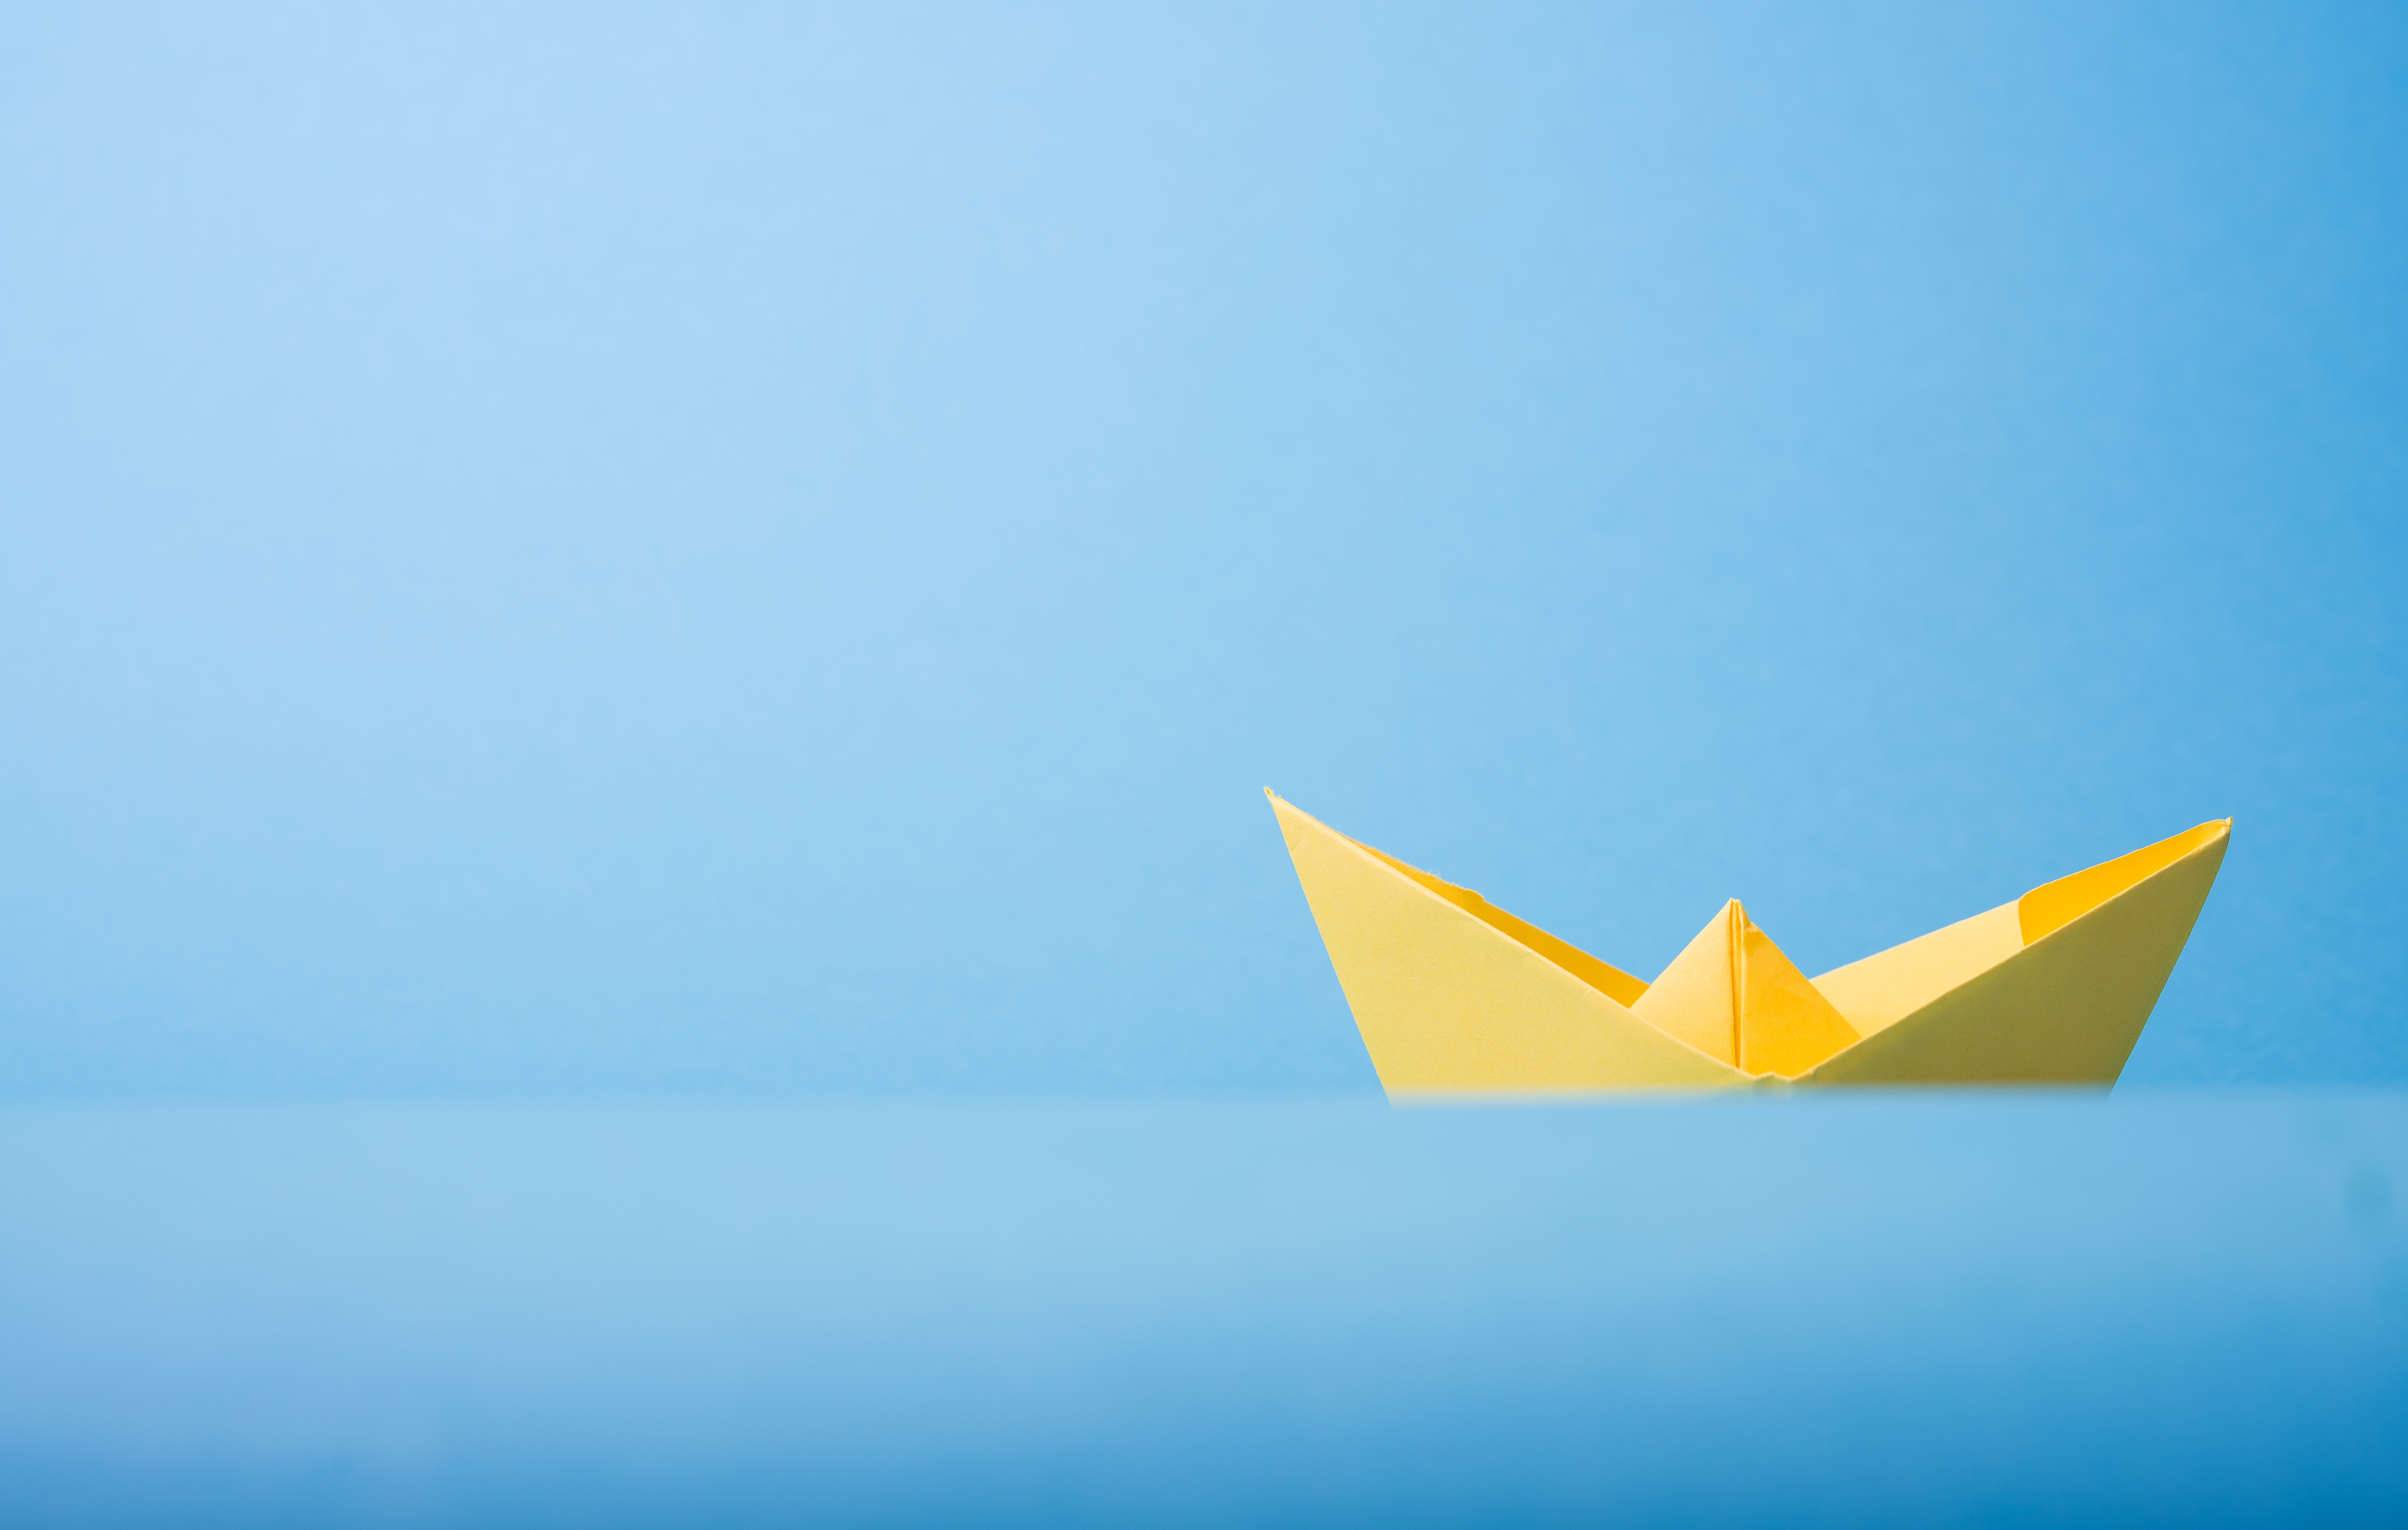 closeup photo of yellow paper boat